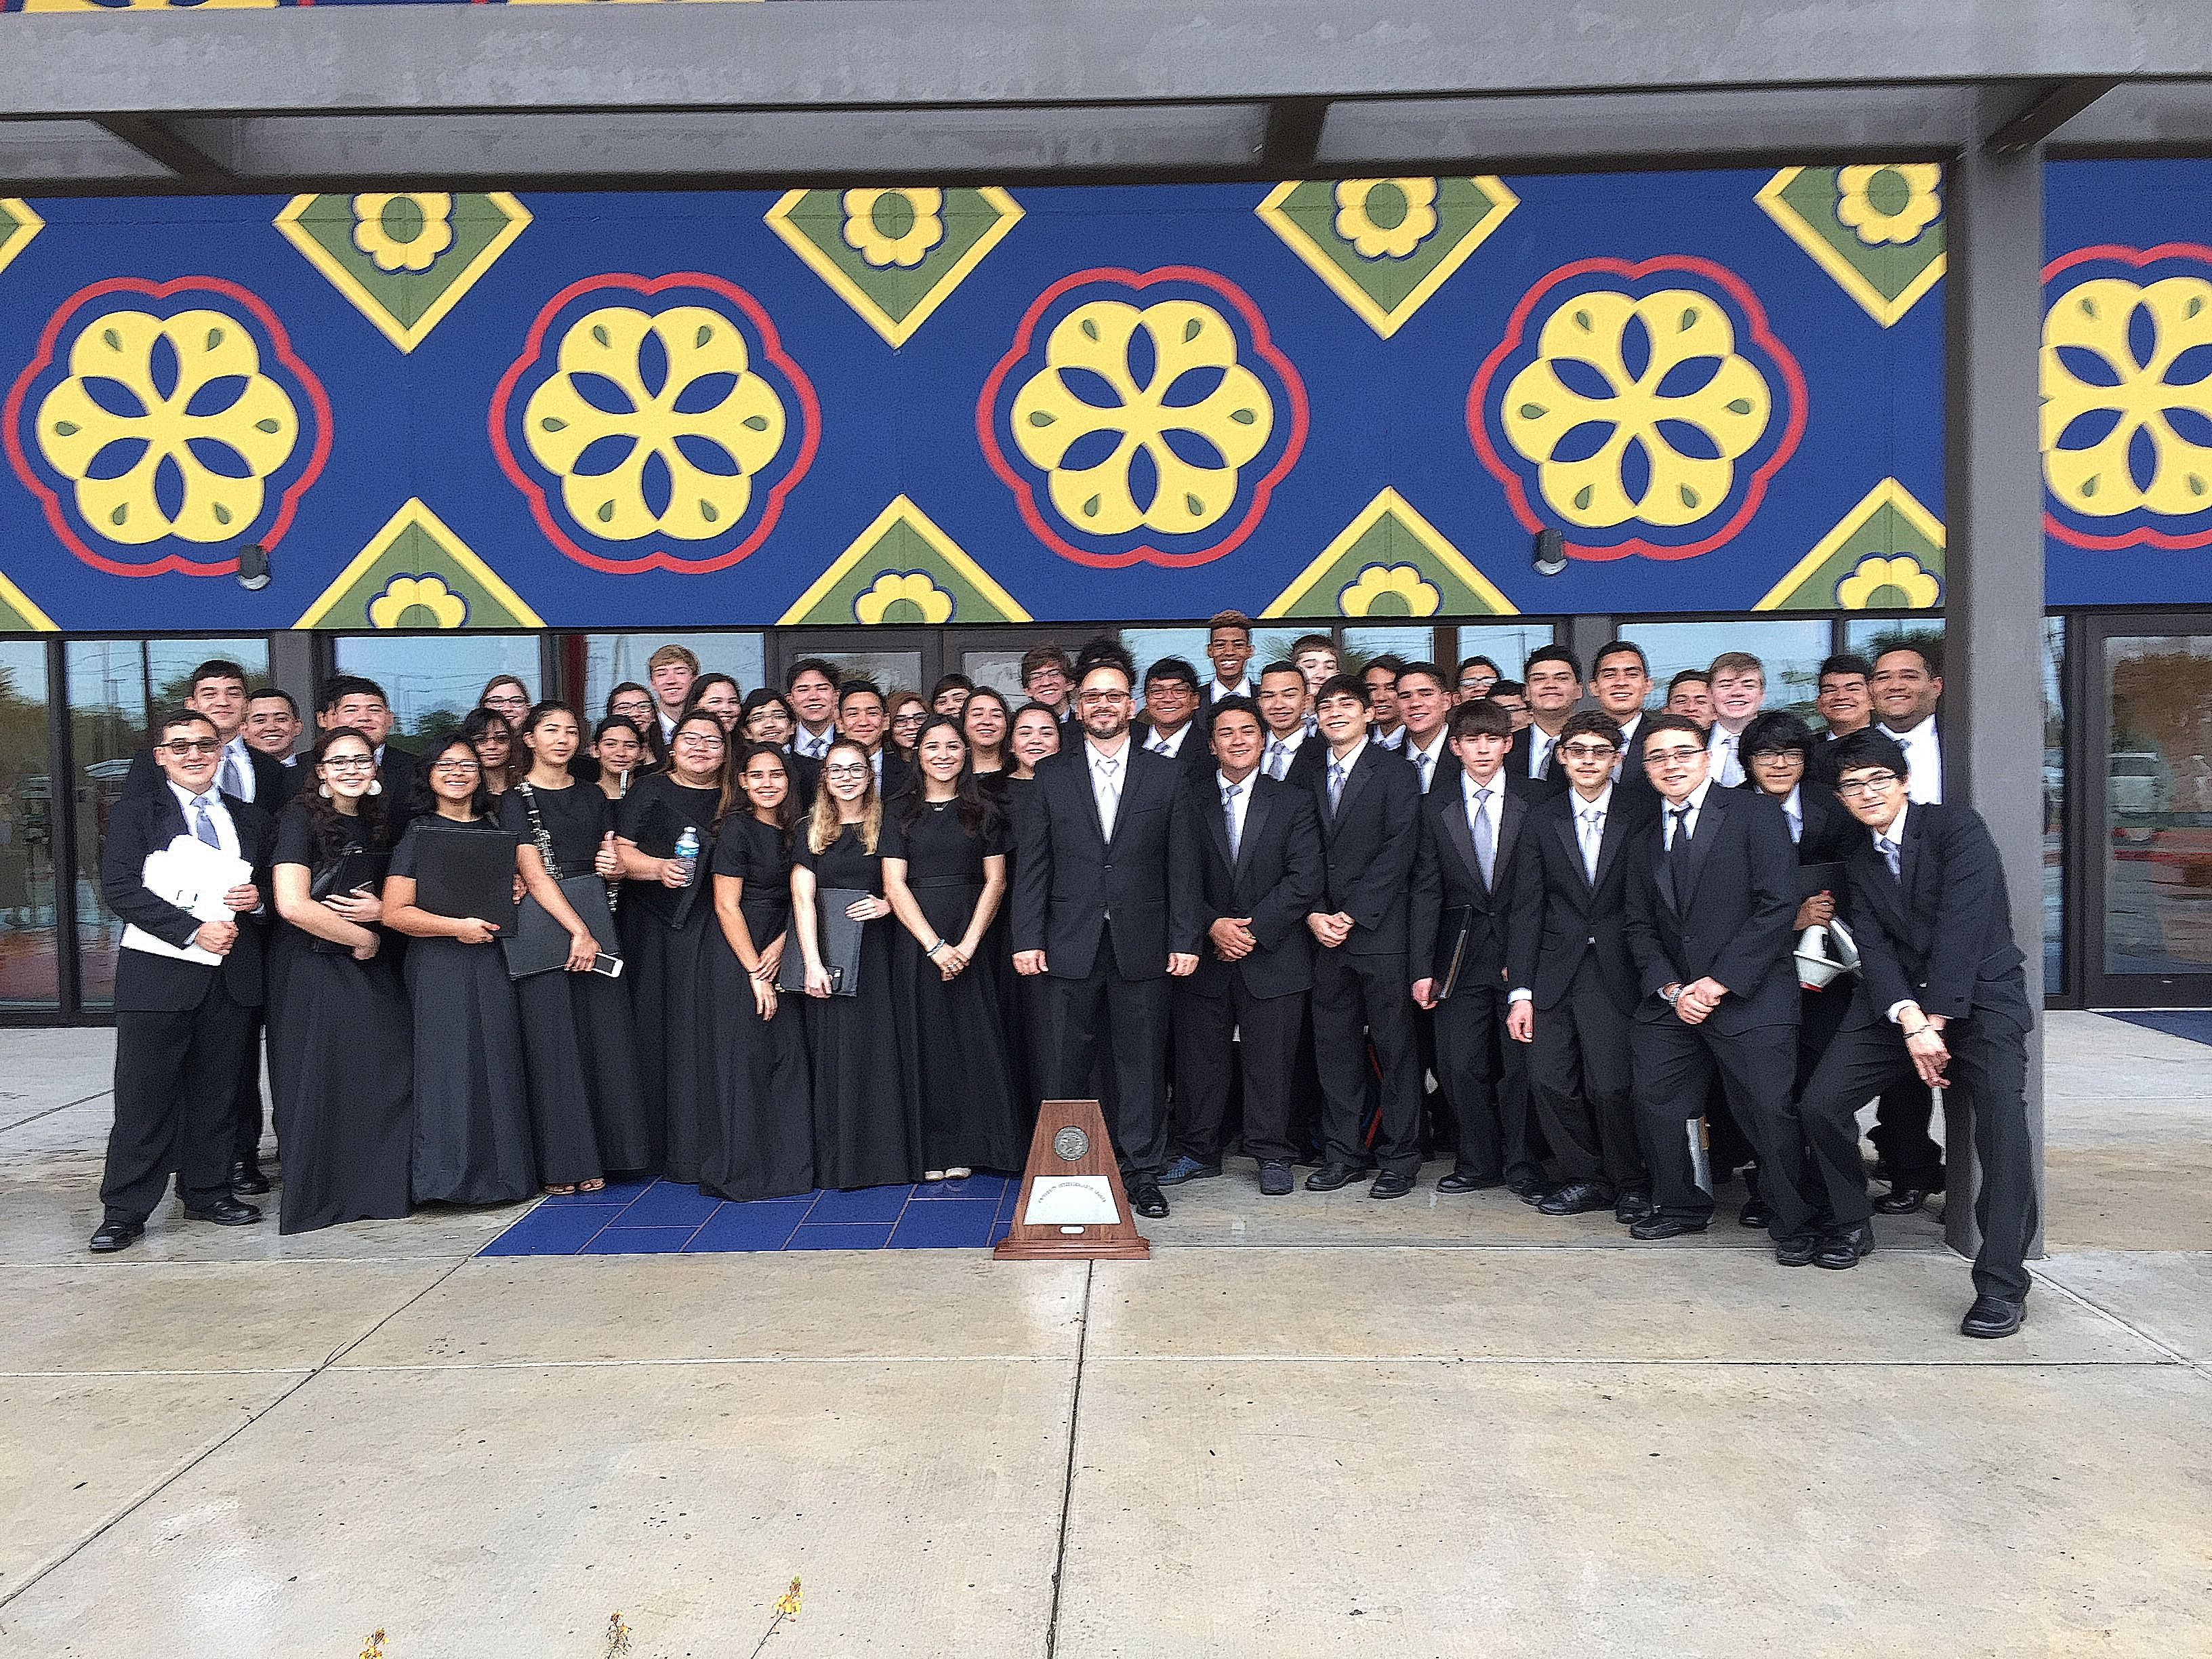 Mighty Hawk Band continues to impress this season